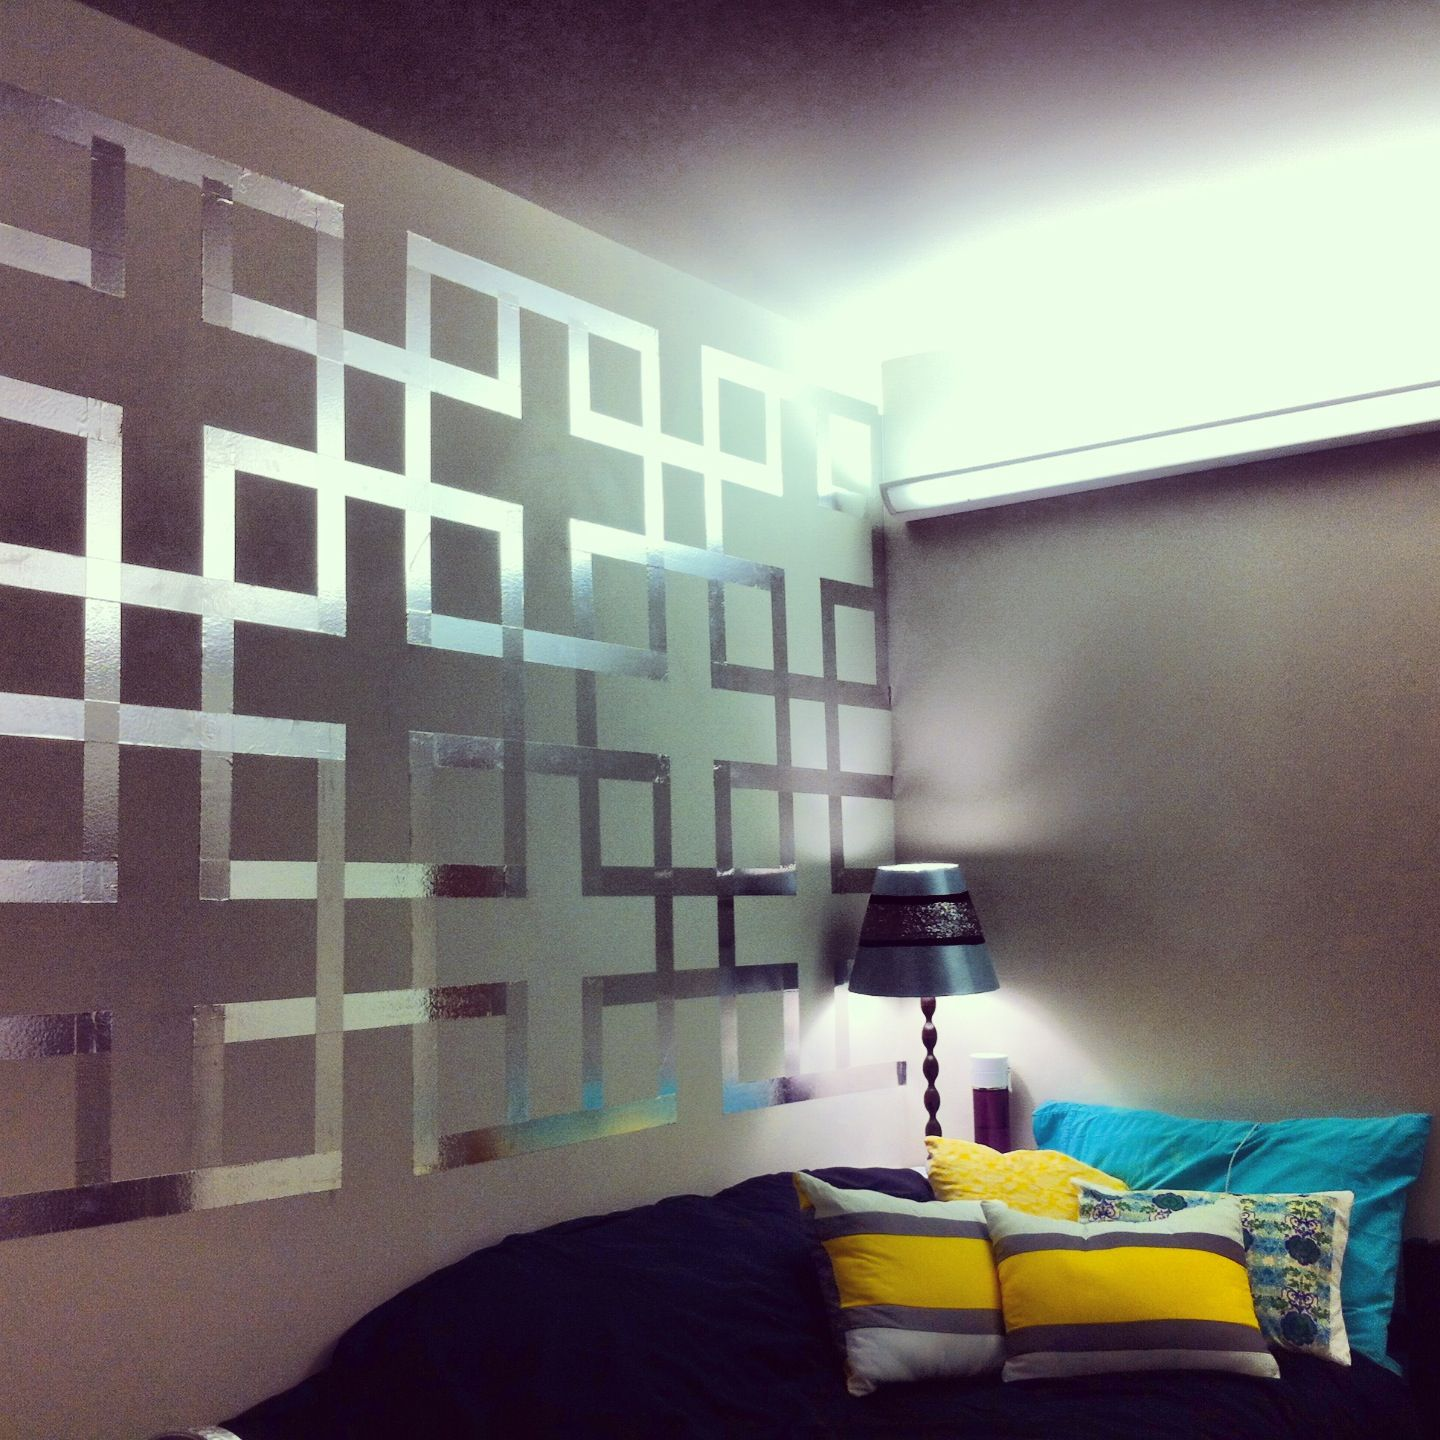 die besten 25 klebebandwandkunst ideen auf pinterest washi band wand abdeckband wand und. Black Bedroom Furniture Sets. Home Design Ideas